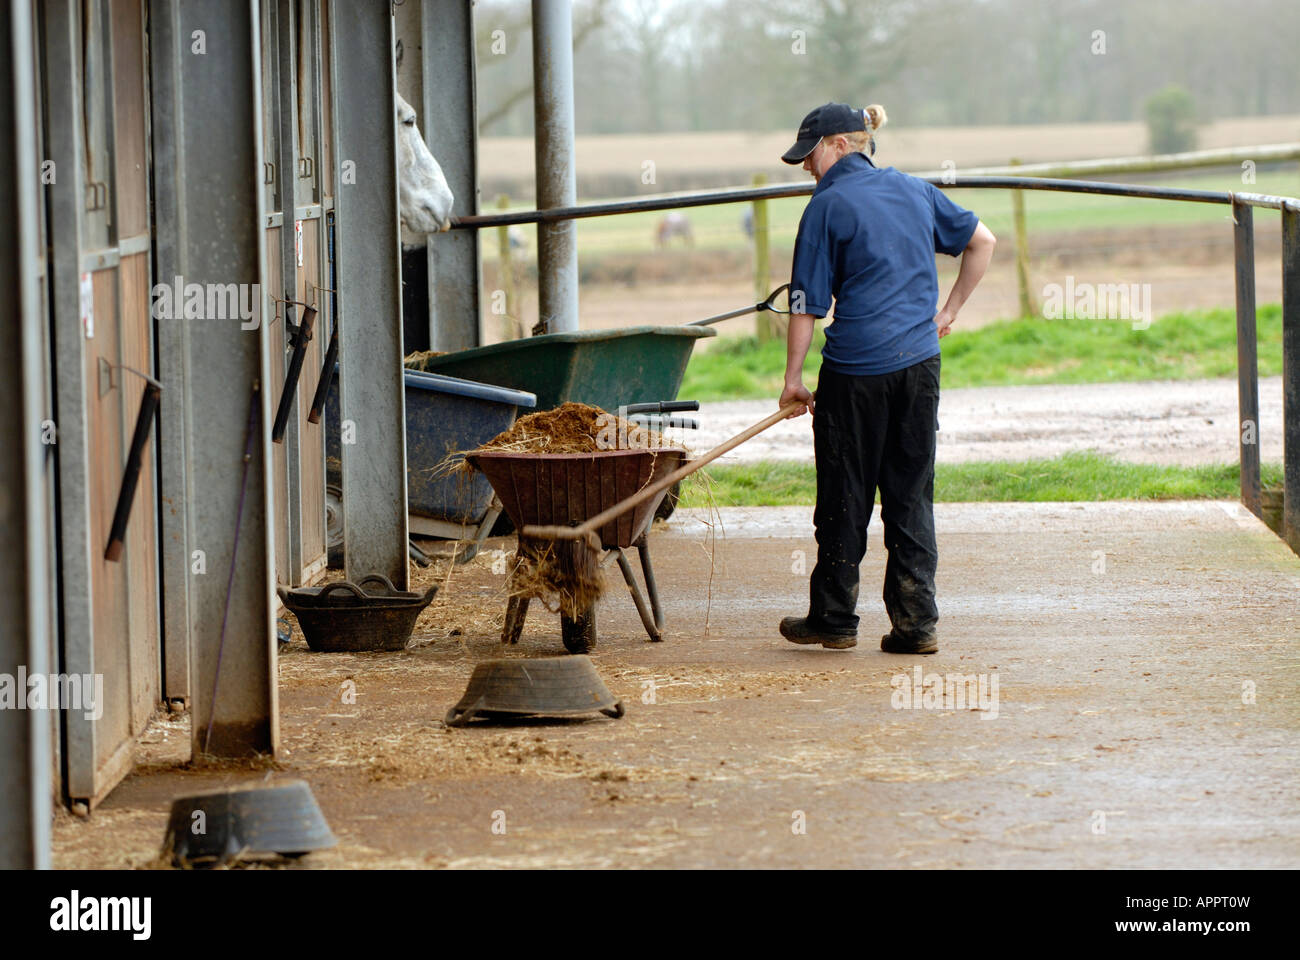 Stock Photo A Stable Worker Groom Hand Mucking Out In The Morning At A Large Stables 15844872 on Free Princess Learning Pack For